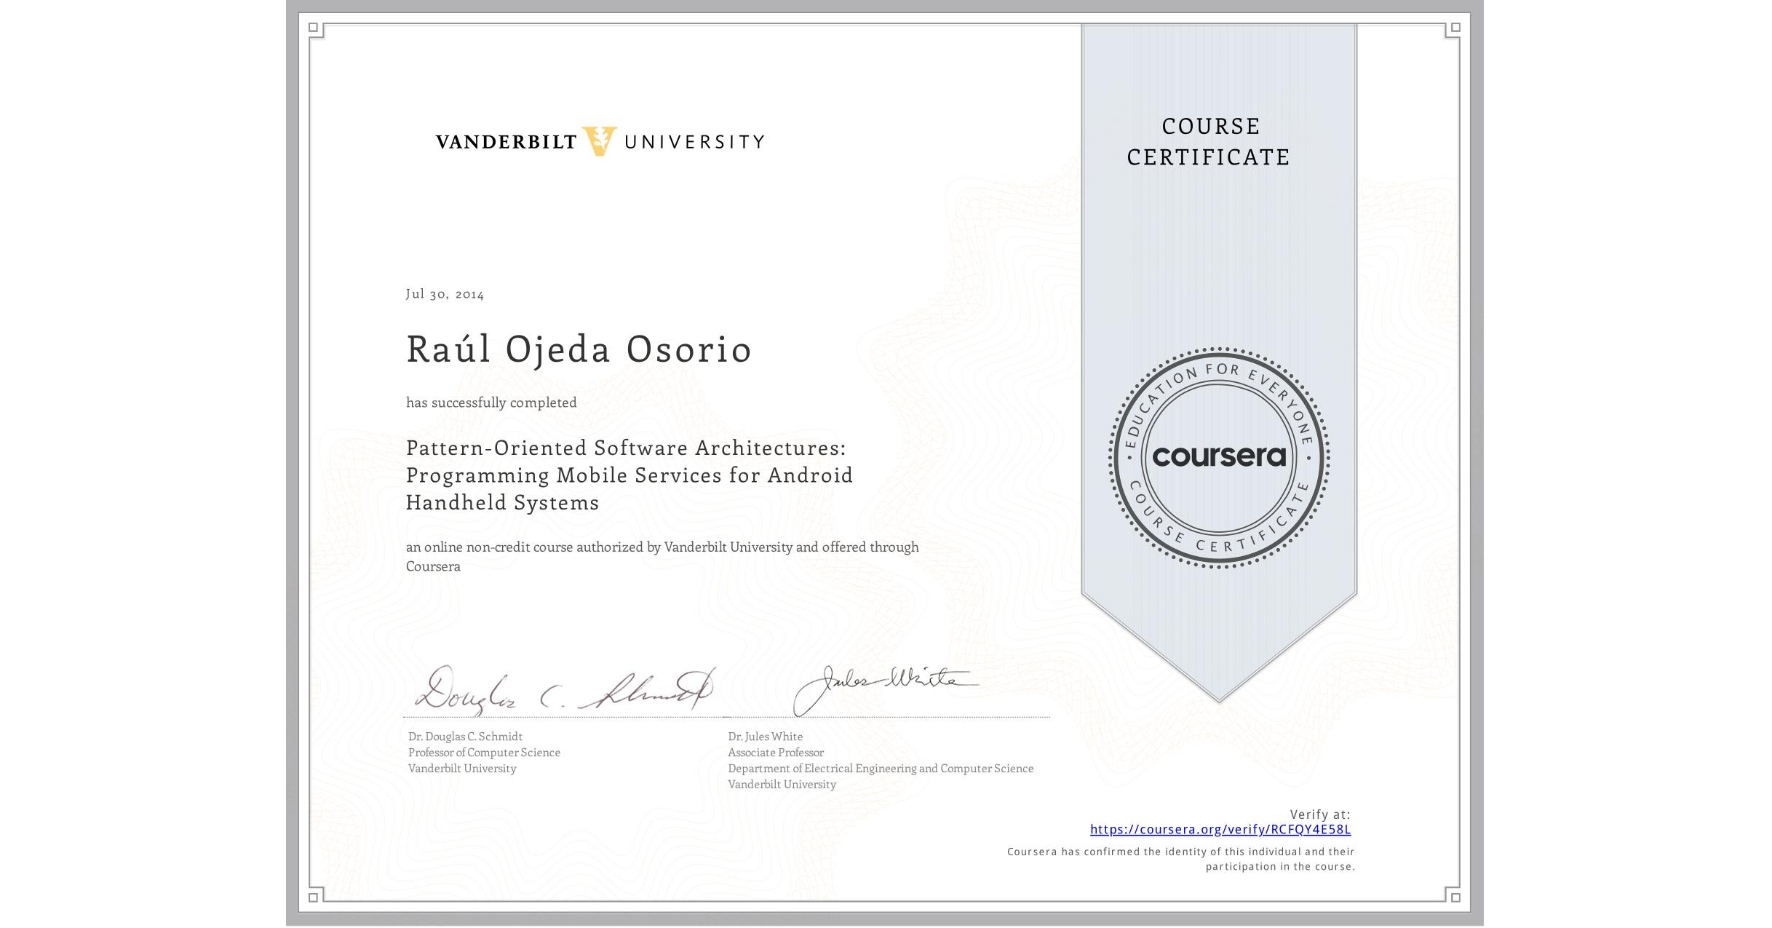 View certificate for Raúl Ojeda Osorio, Pattern-Oriented Software Architectures: Programming Mobile Services for Android Handheld Systems, an online non-credit course authorized by Vanderbilt University and offered through Coursera